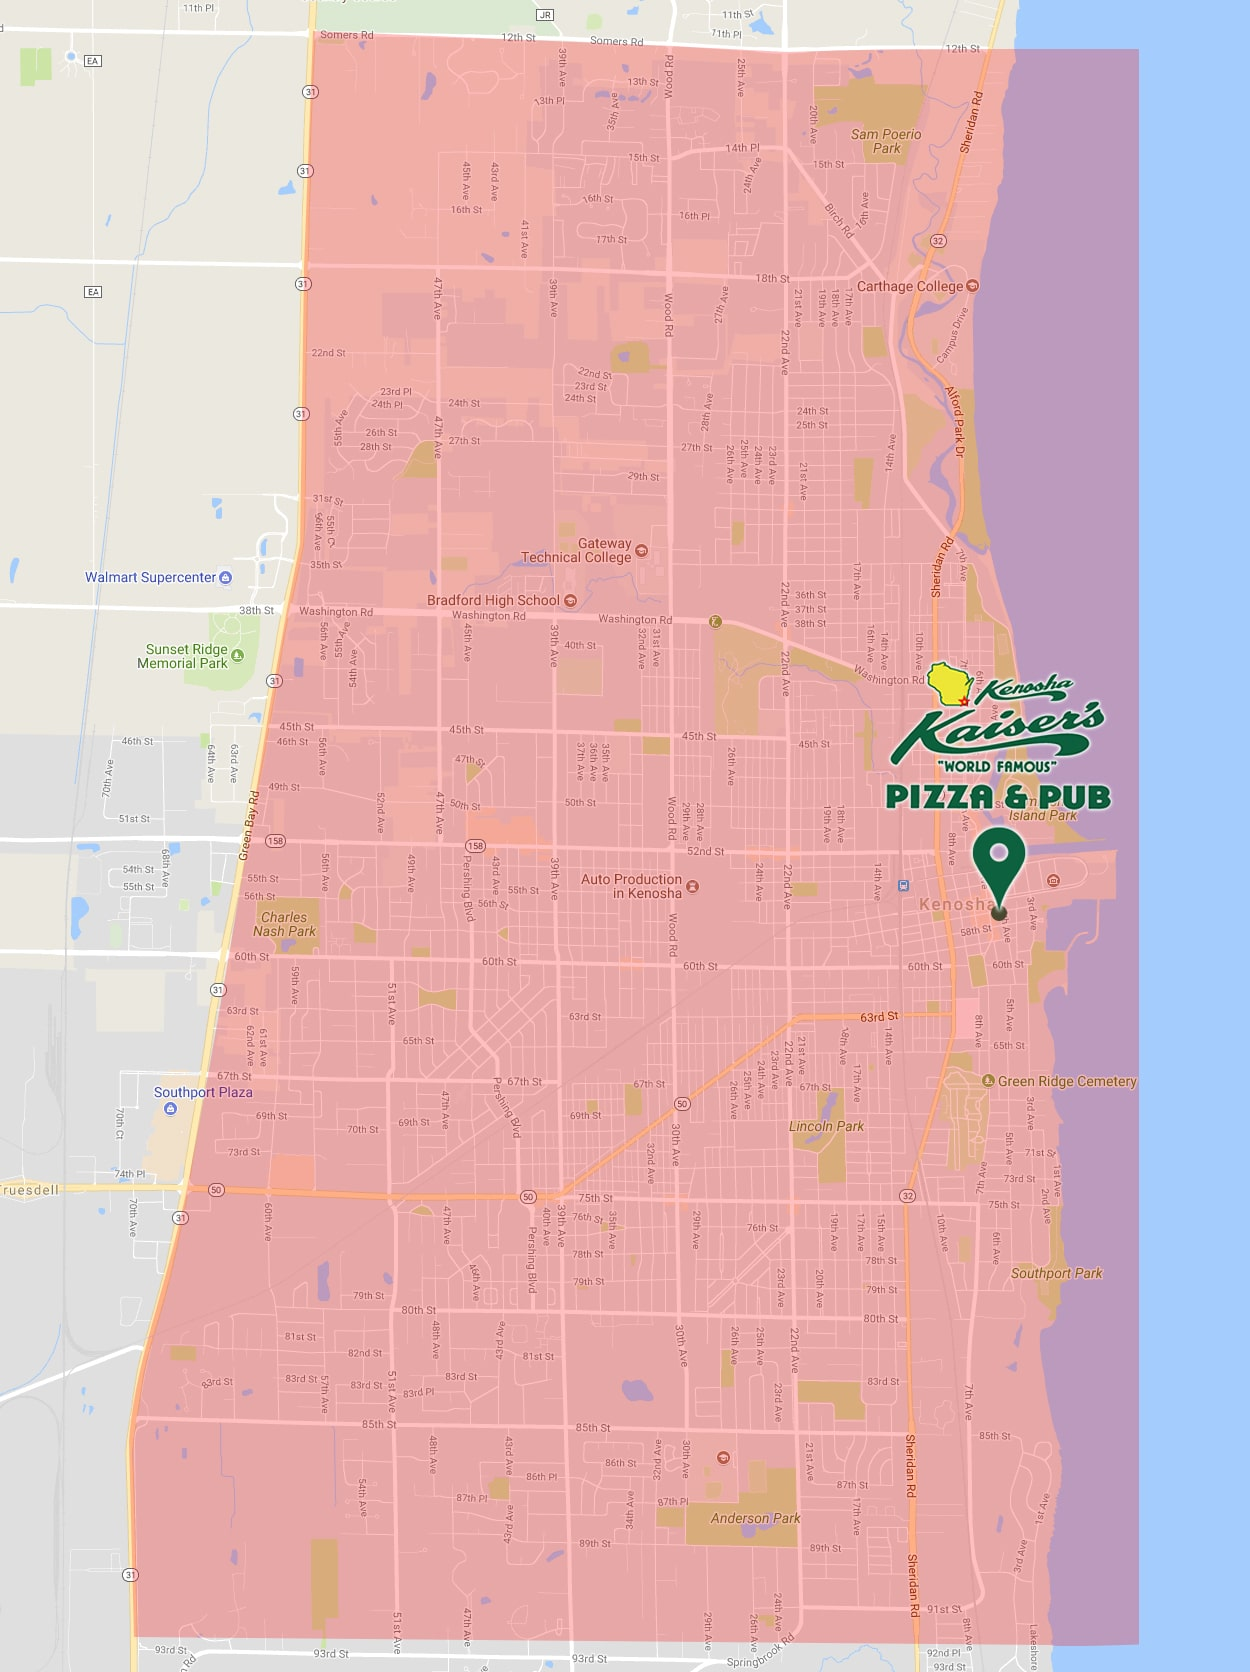 kaiser's delivery area, service area, kaiser's pizza delivery zone